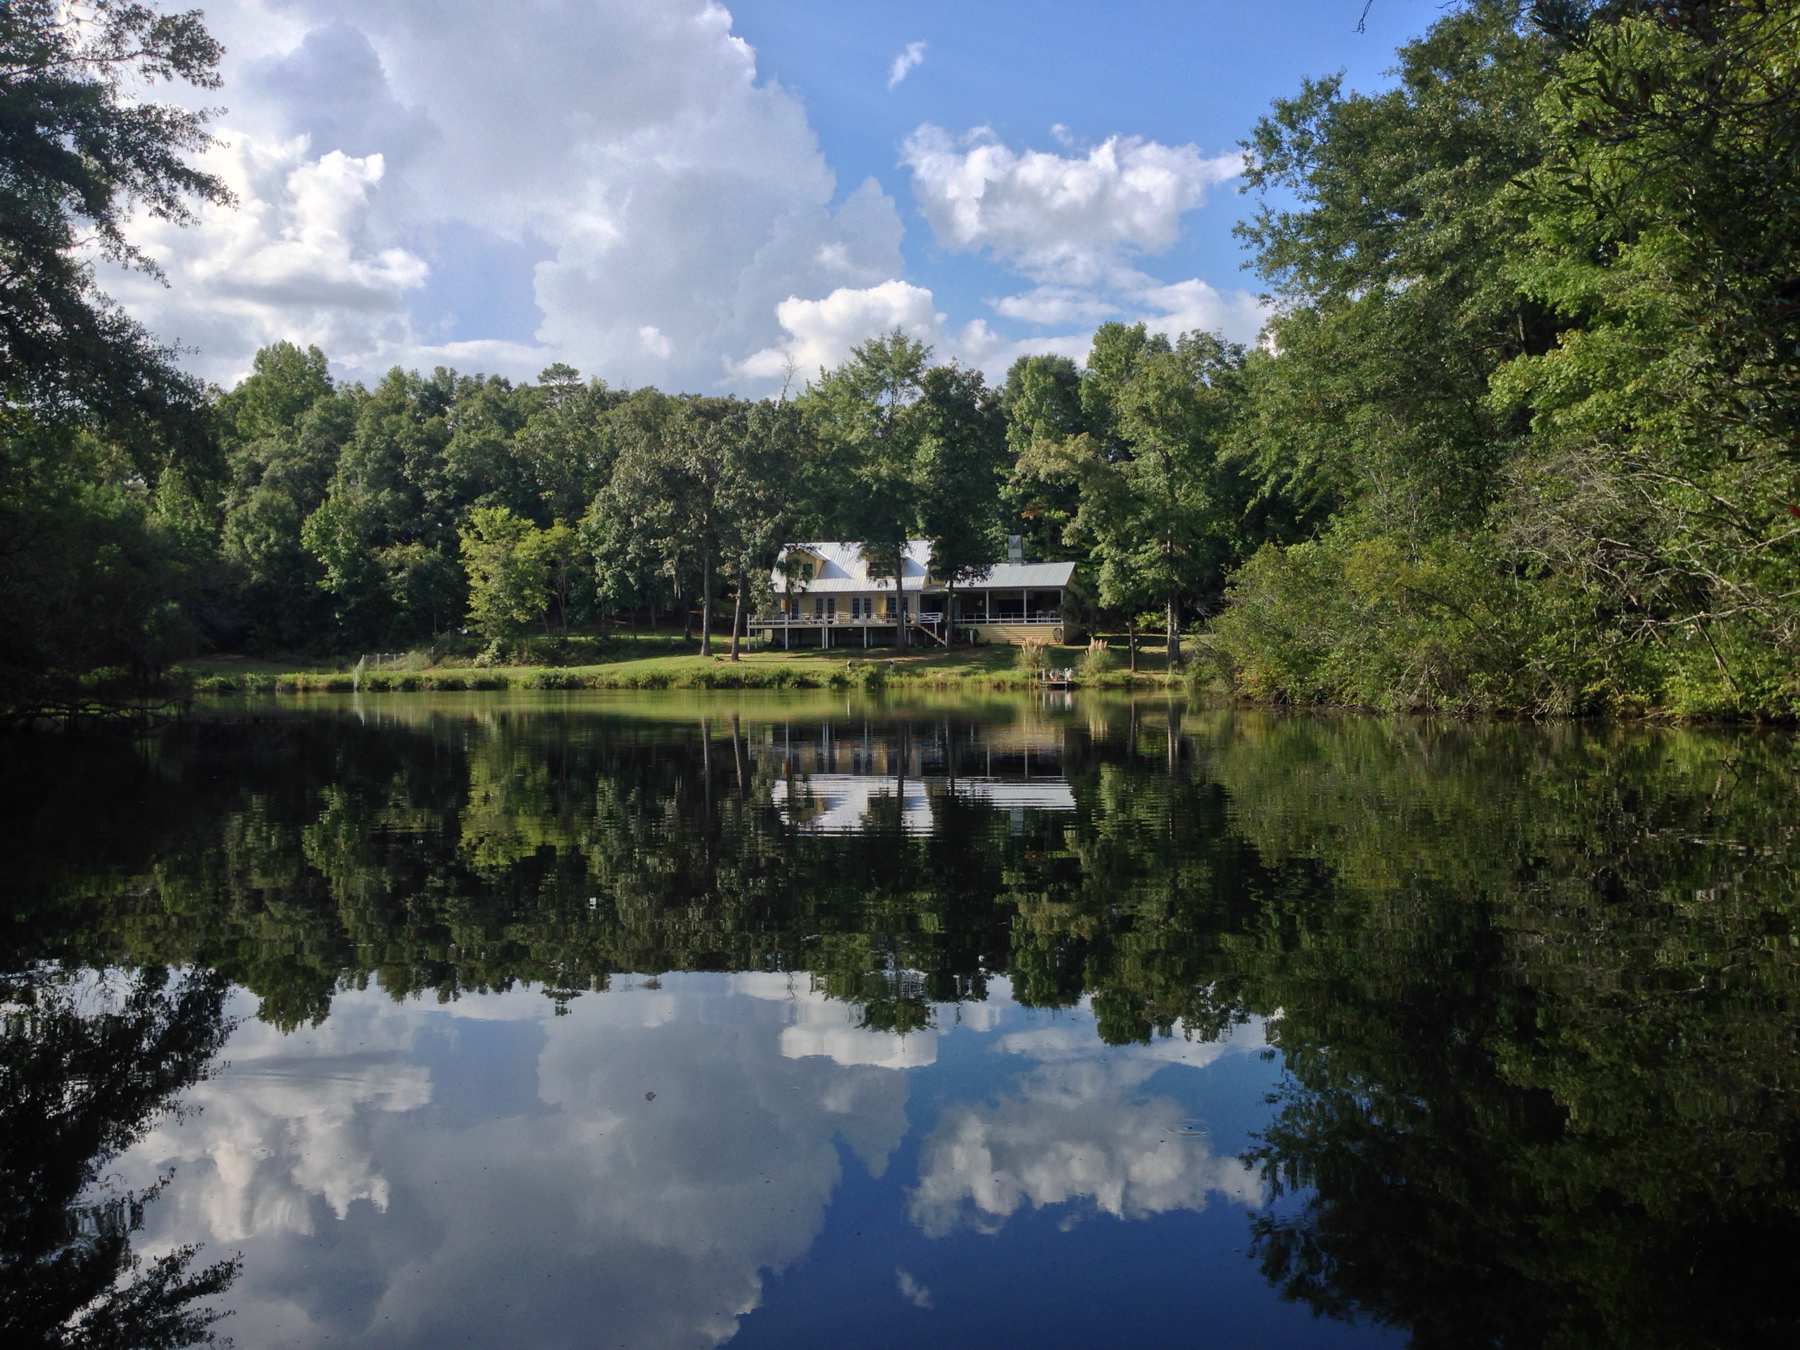 3riversrealty,plantation,middle-georgia-farm,secluded-living,private-get-away,mills-brock,georgia-land-for-sale,-house-and-pond.jpg